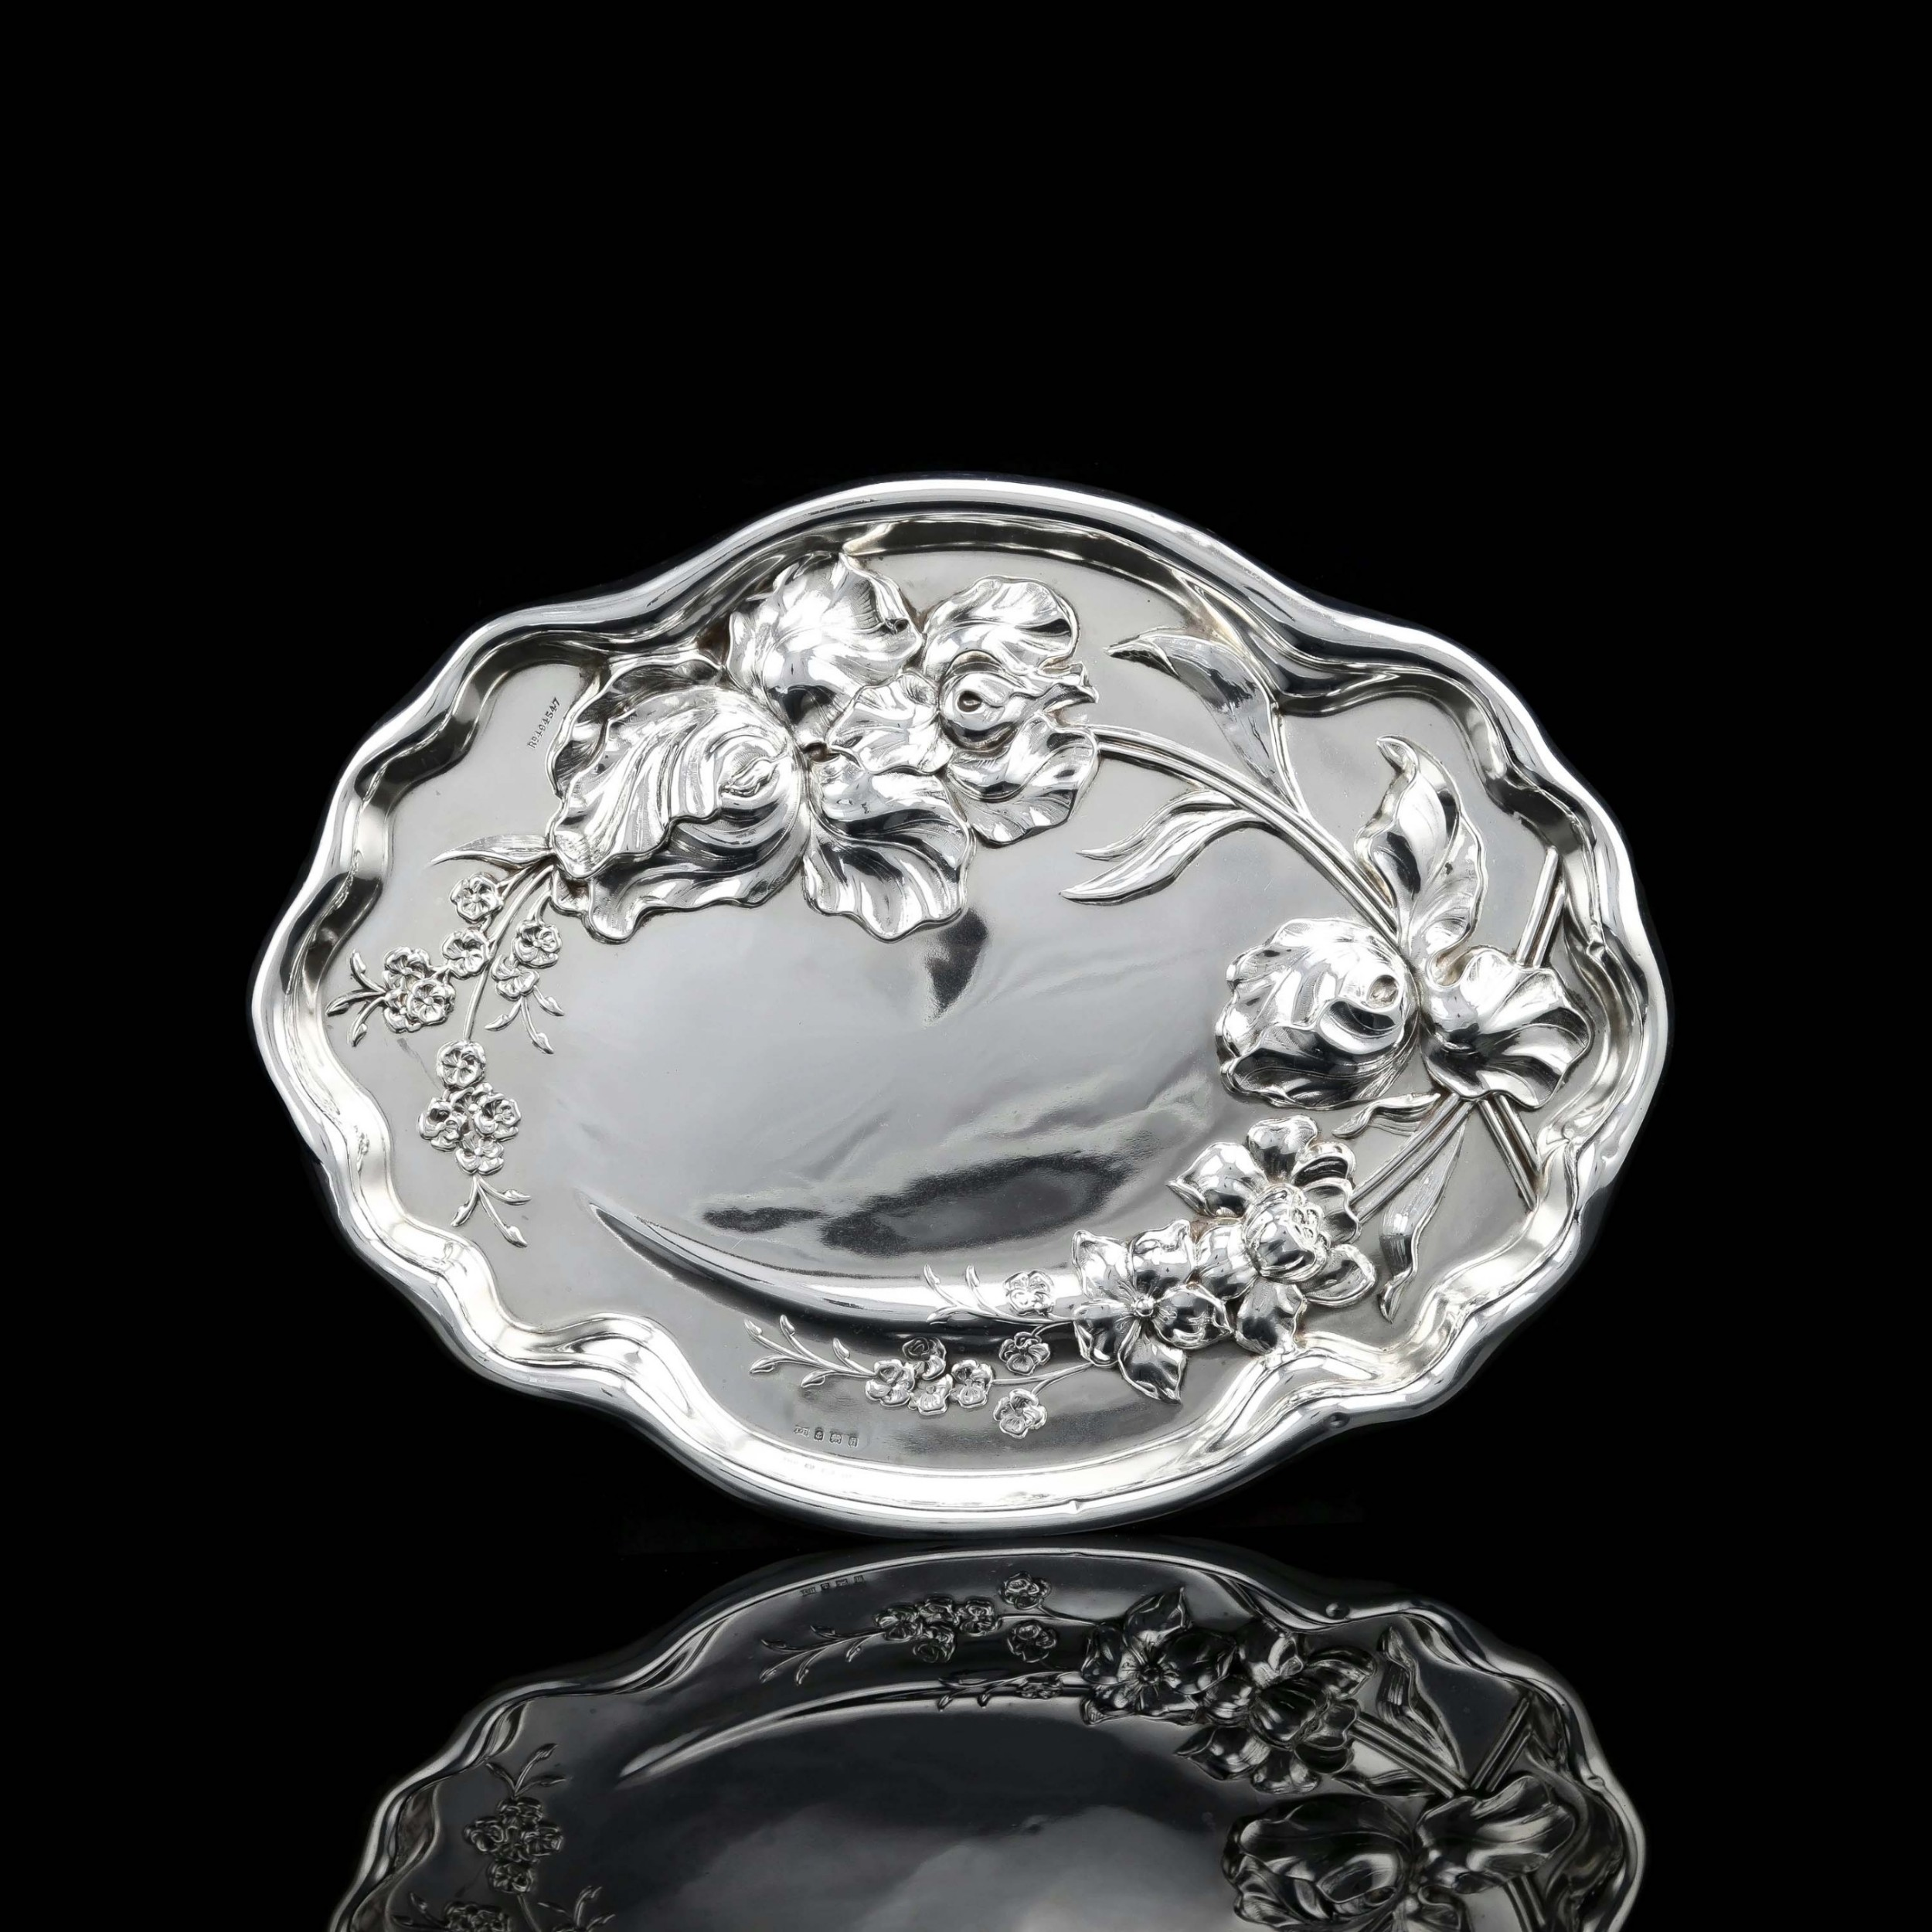 antique solid sterling silver large dishtray with art nouveau floral design thomas bishton 1907